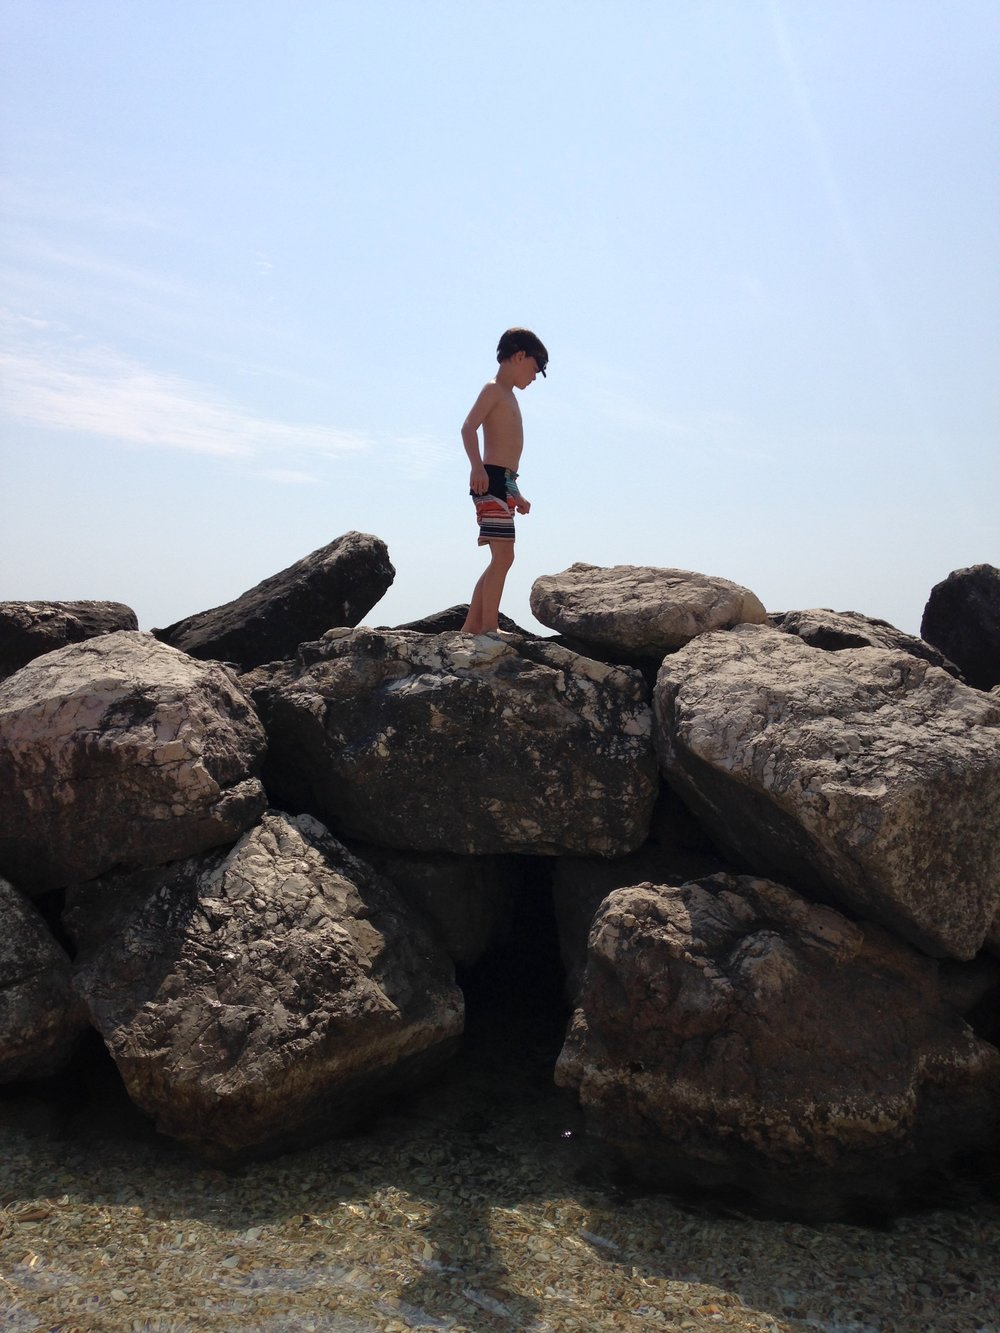 Gabe on the rocks of the beach in Le Marche, Italy